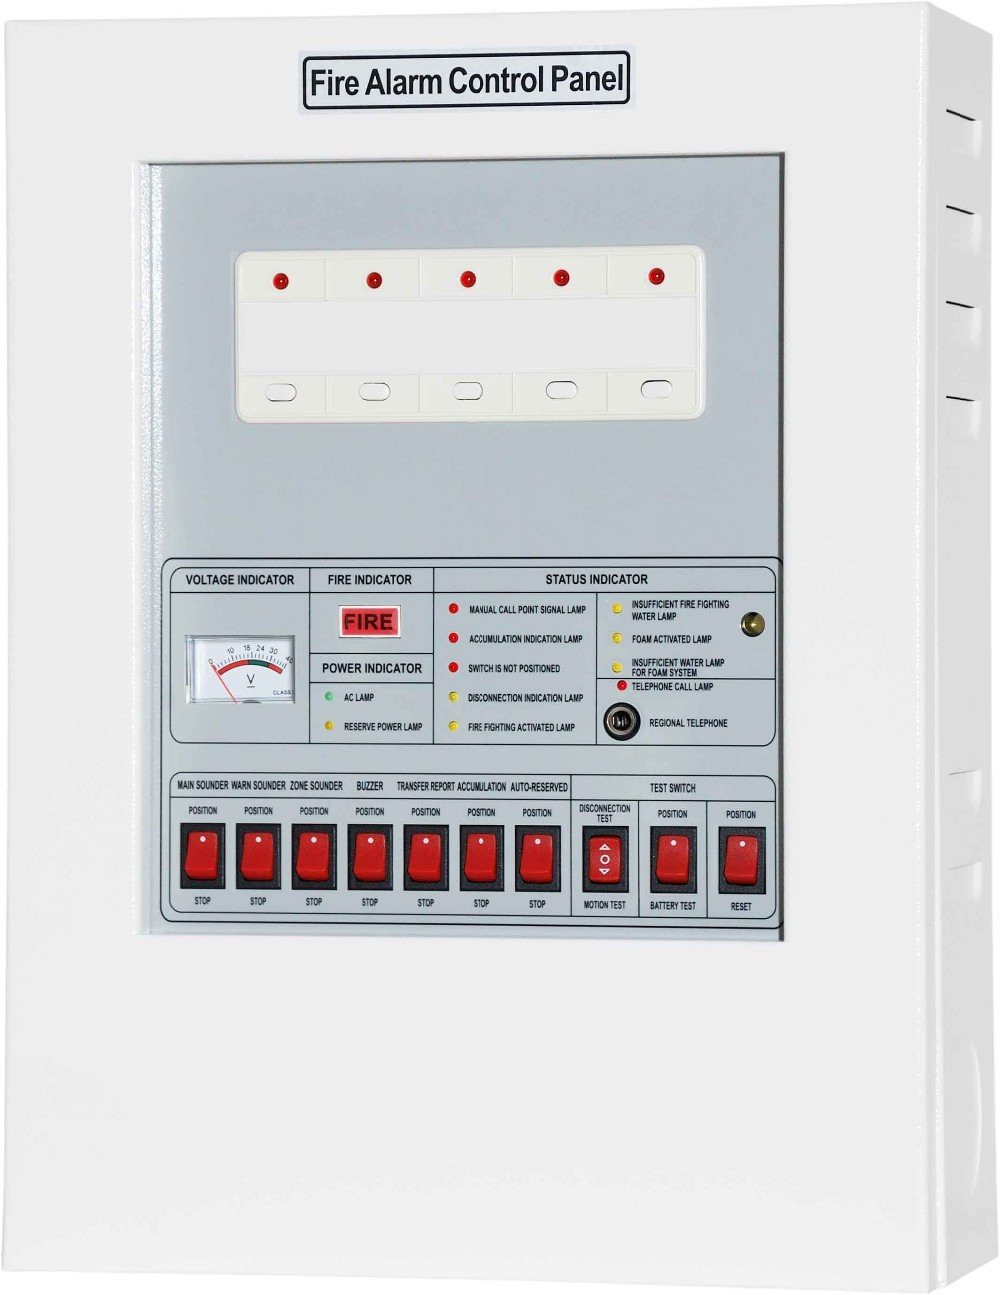 Cm-p1 Conventional Fire Alarm System Control Panel - Buy Fire Alarm ...